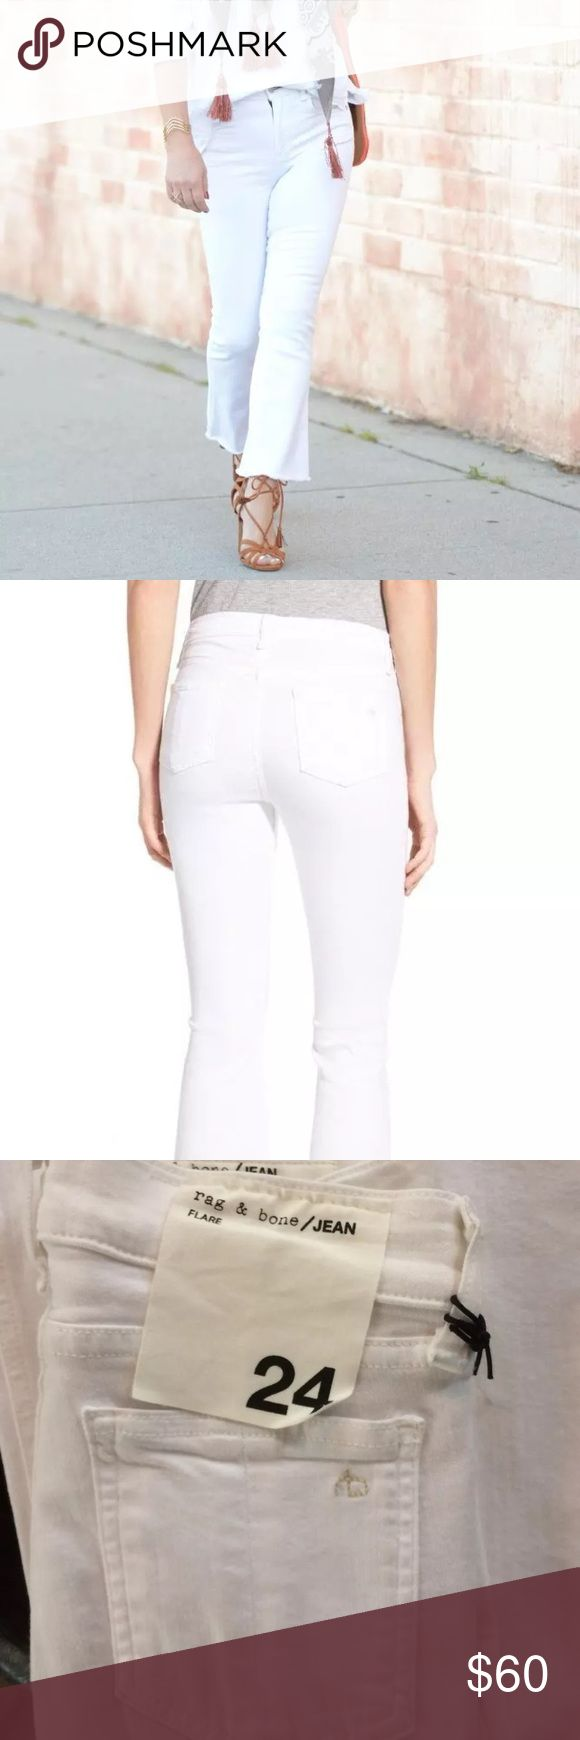 """NEW Rag & Bone Flare Raw Hem Jeans Bright White $185 NEW Rag & Bone Flare High Rise Raw Hem Jeans Bright White ~Size 24~  New with partial tags attached. Retails for $185 SOLD OUT!  White High rise Crop with raw hem Stretch 43% viscose, 33% cotton, 17% tencel, 2% poly, 2% elastane  Size 24  Measures approximately: waist across 12.5"""" rise 9.5"""" inseam 26.25""""  High end department store shelf pull- new without tags. May have had customer contact *Has a faint makeup spot on leg from being handled…"""